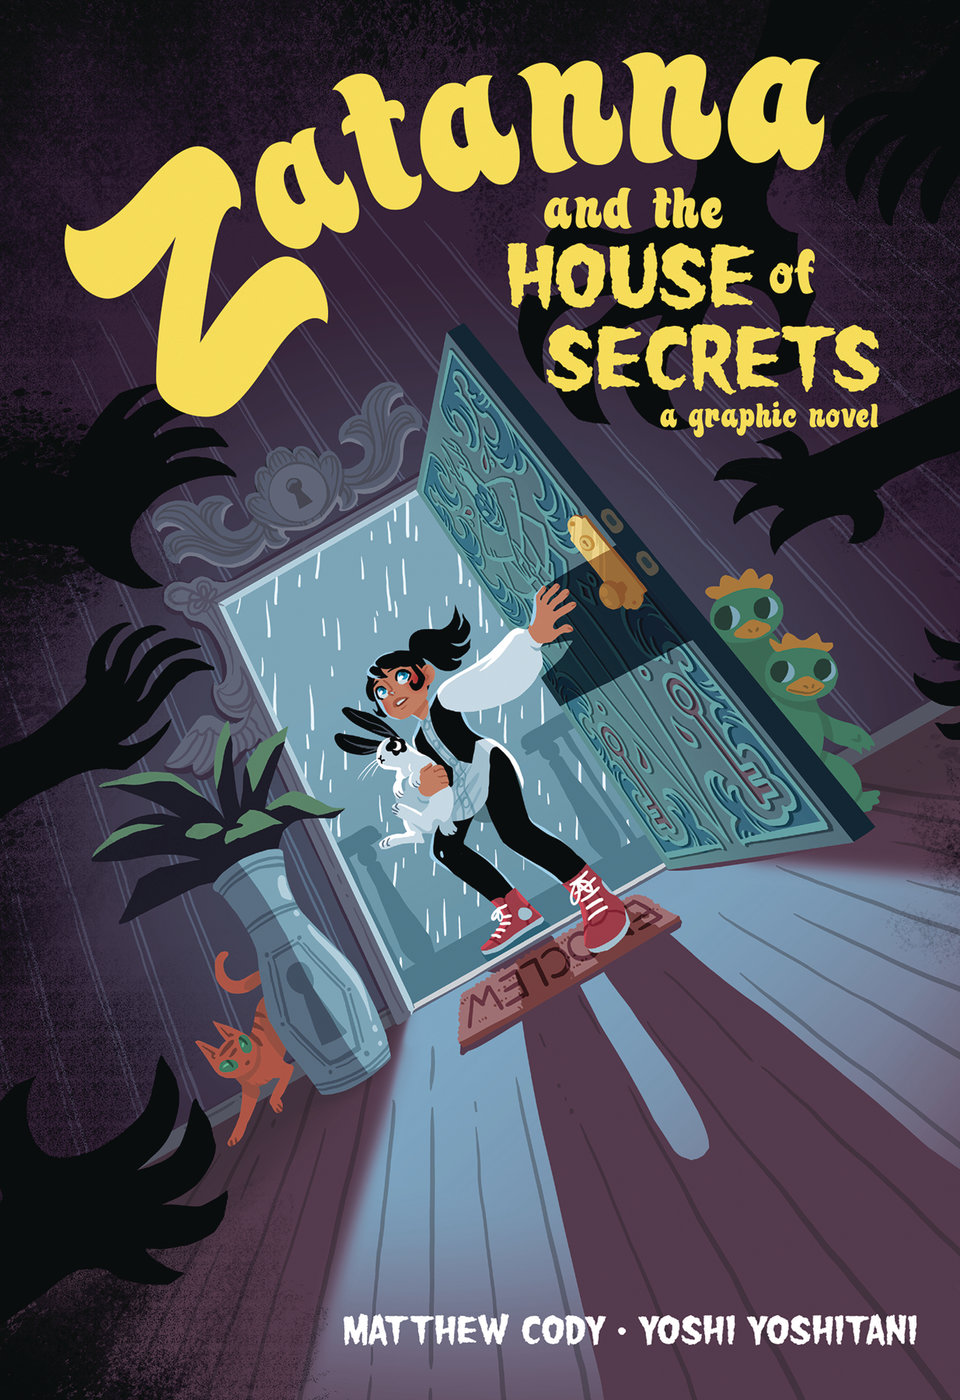 'Zatanna and the House of Secrets' TPB review: A magical delight for all ages